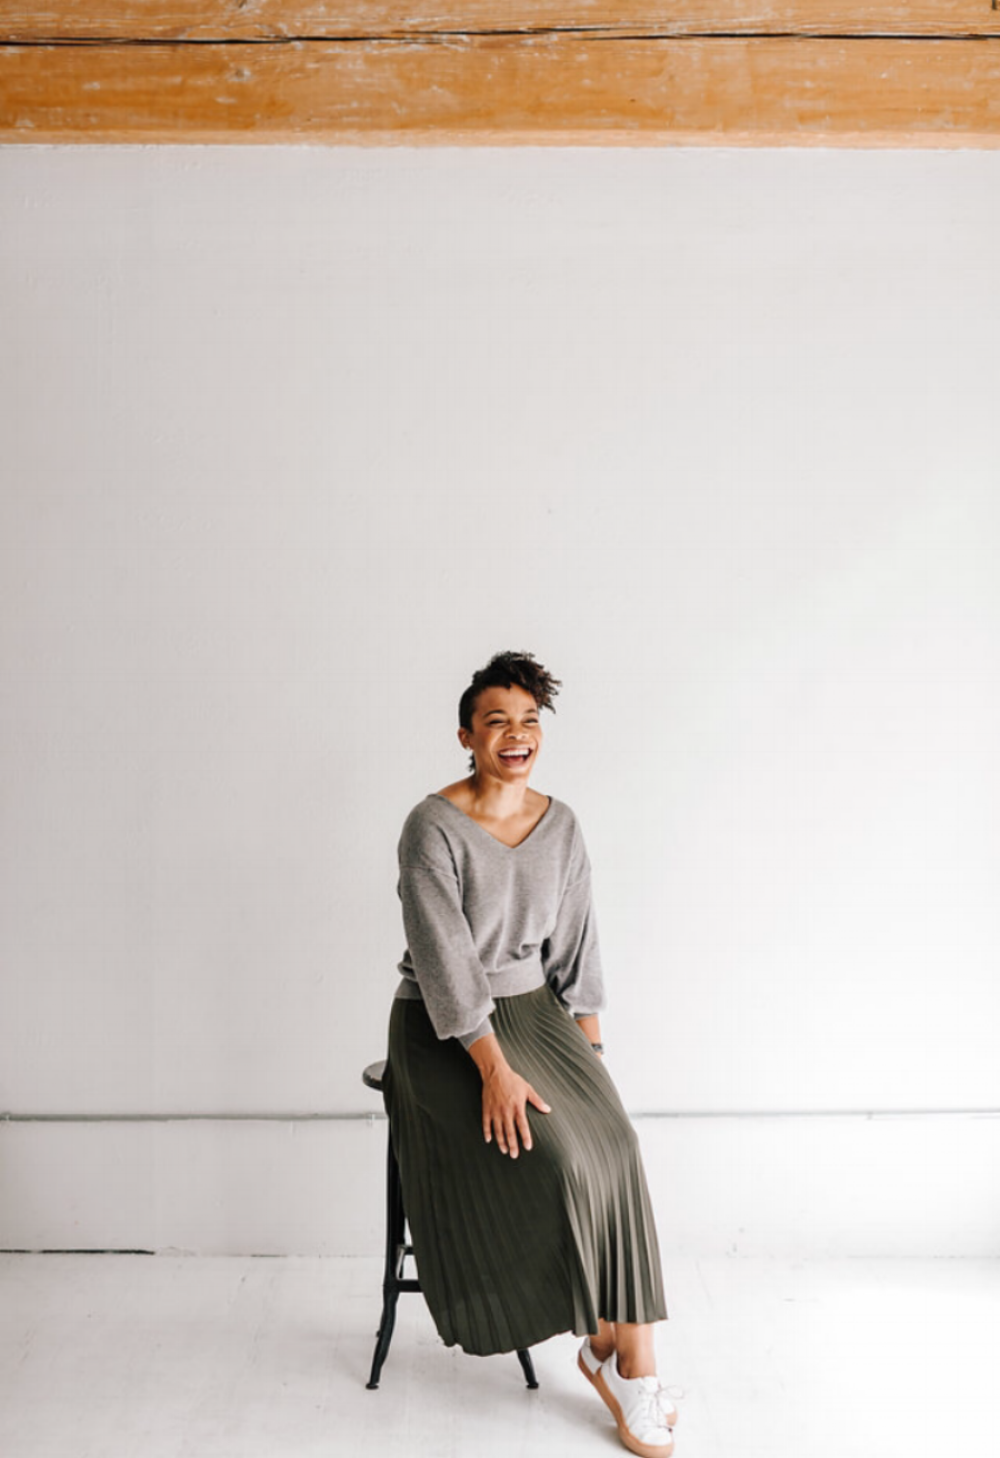 MEET KENNESHA - Hi there, I'm the creative behind Restoration House and I'm glad you are here...READ MORE